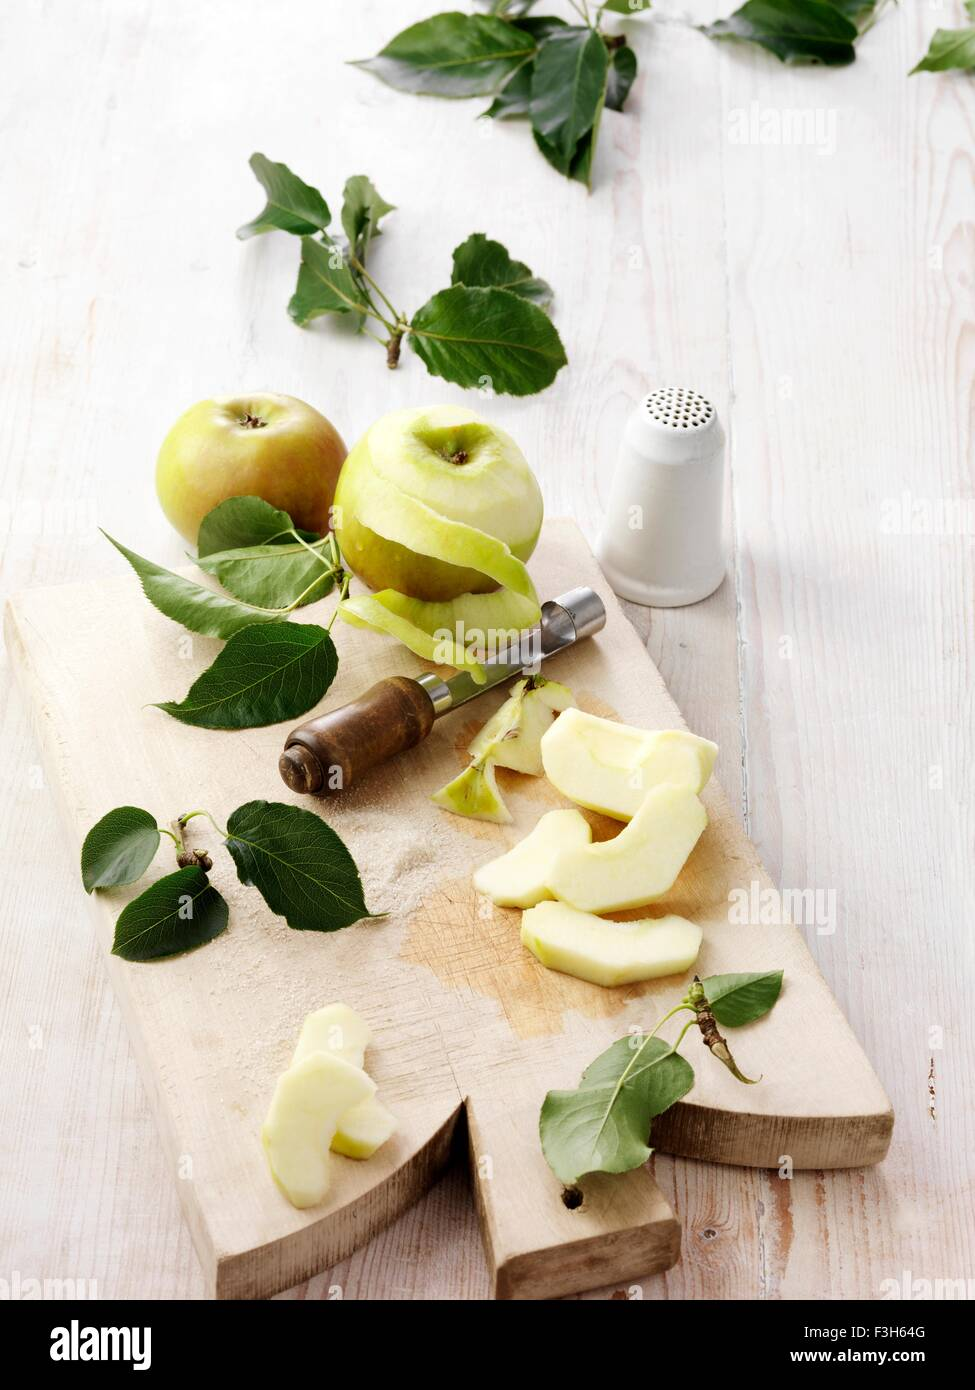 Ingredients for bramley apple crumble on whitewashed wooden table - Stock Image